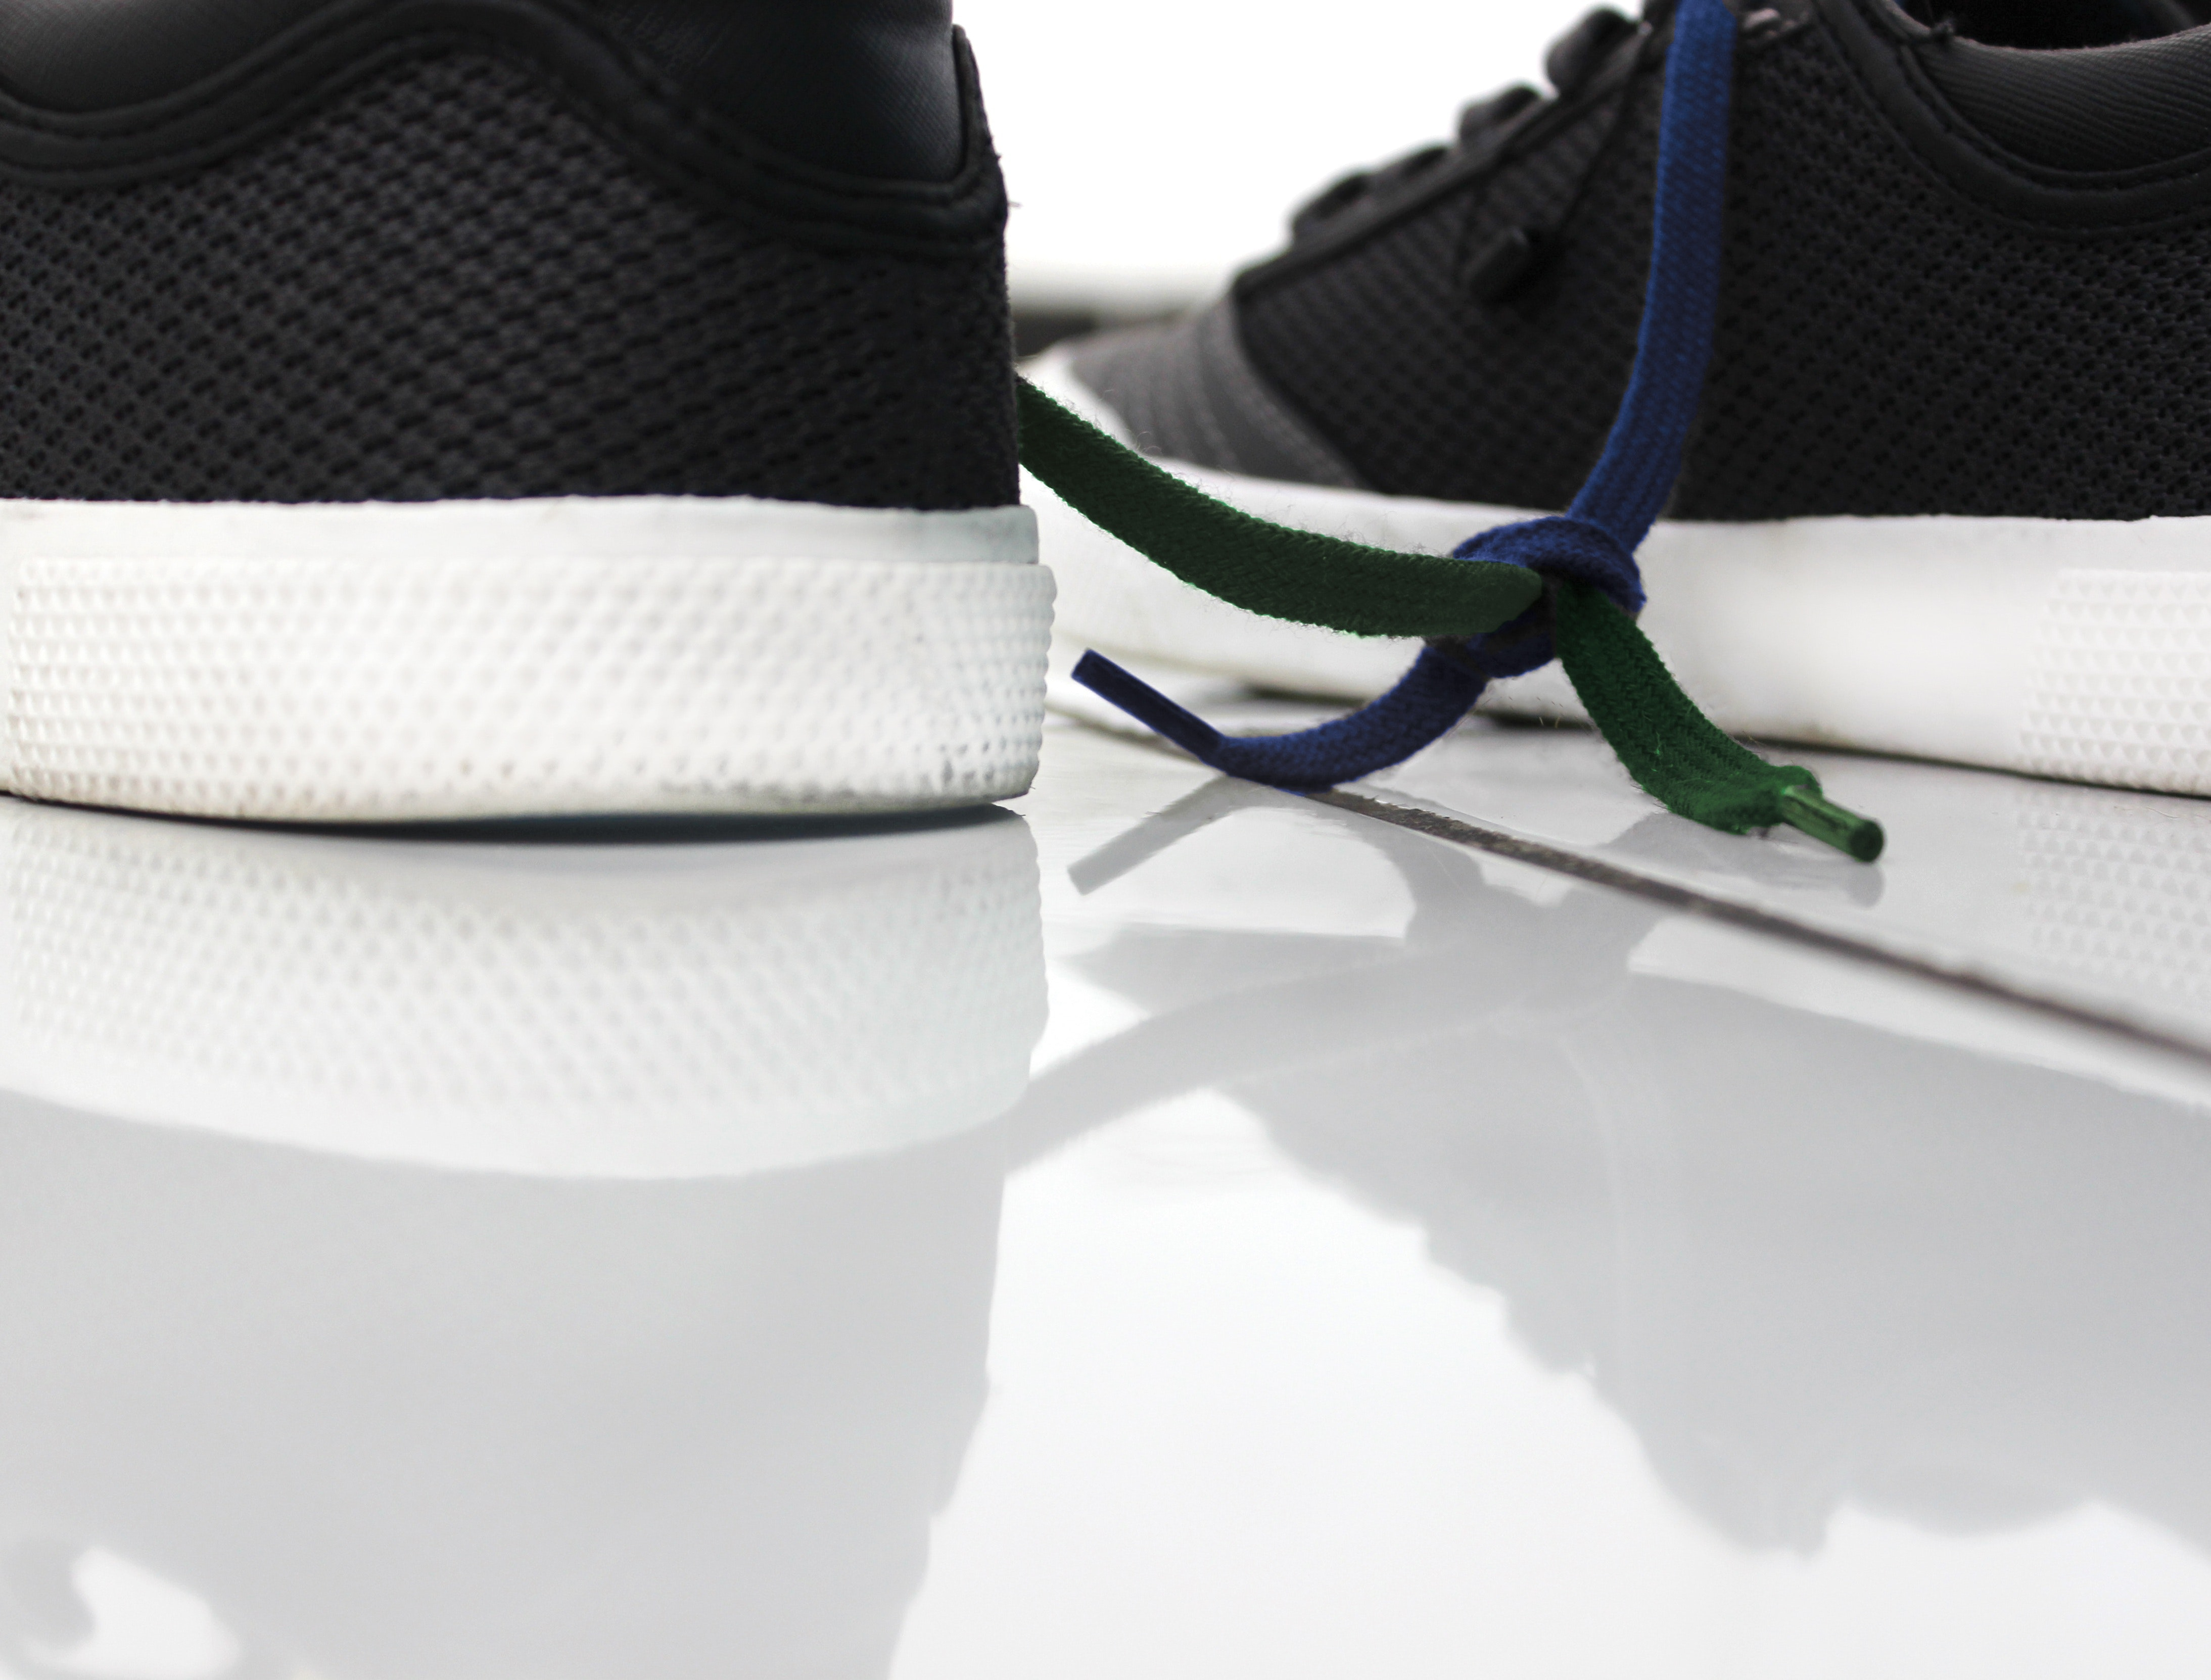 Close-up of Shoes Against White Background, Athlete, Running, Walking, Tied, HQ Photo